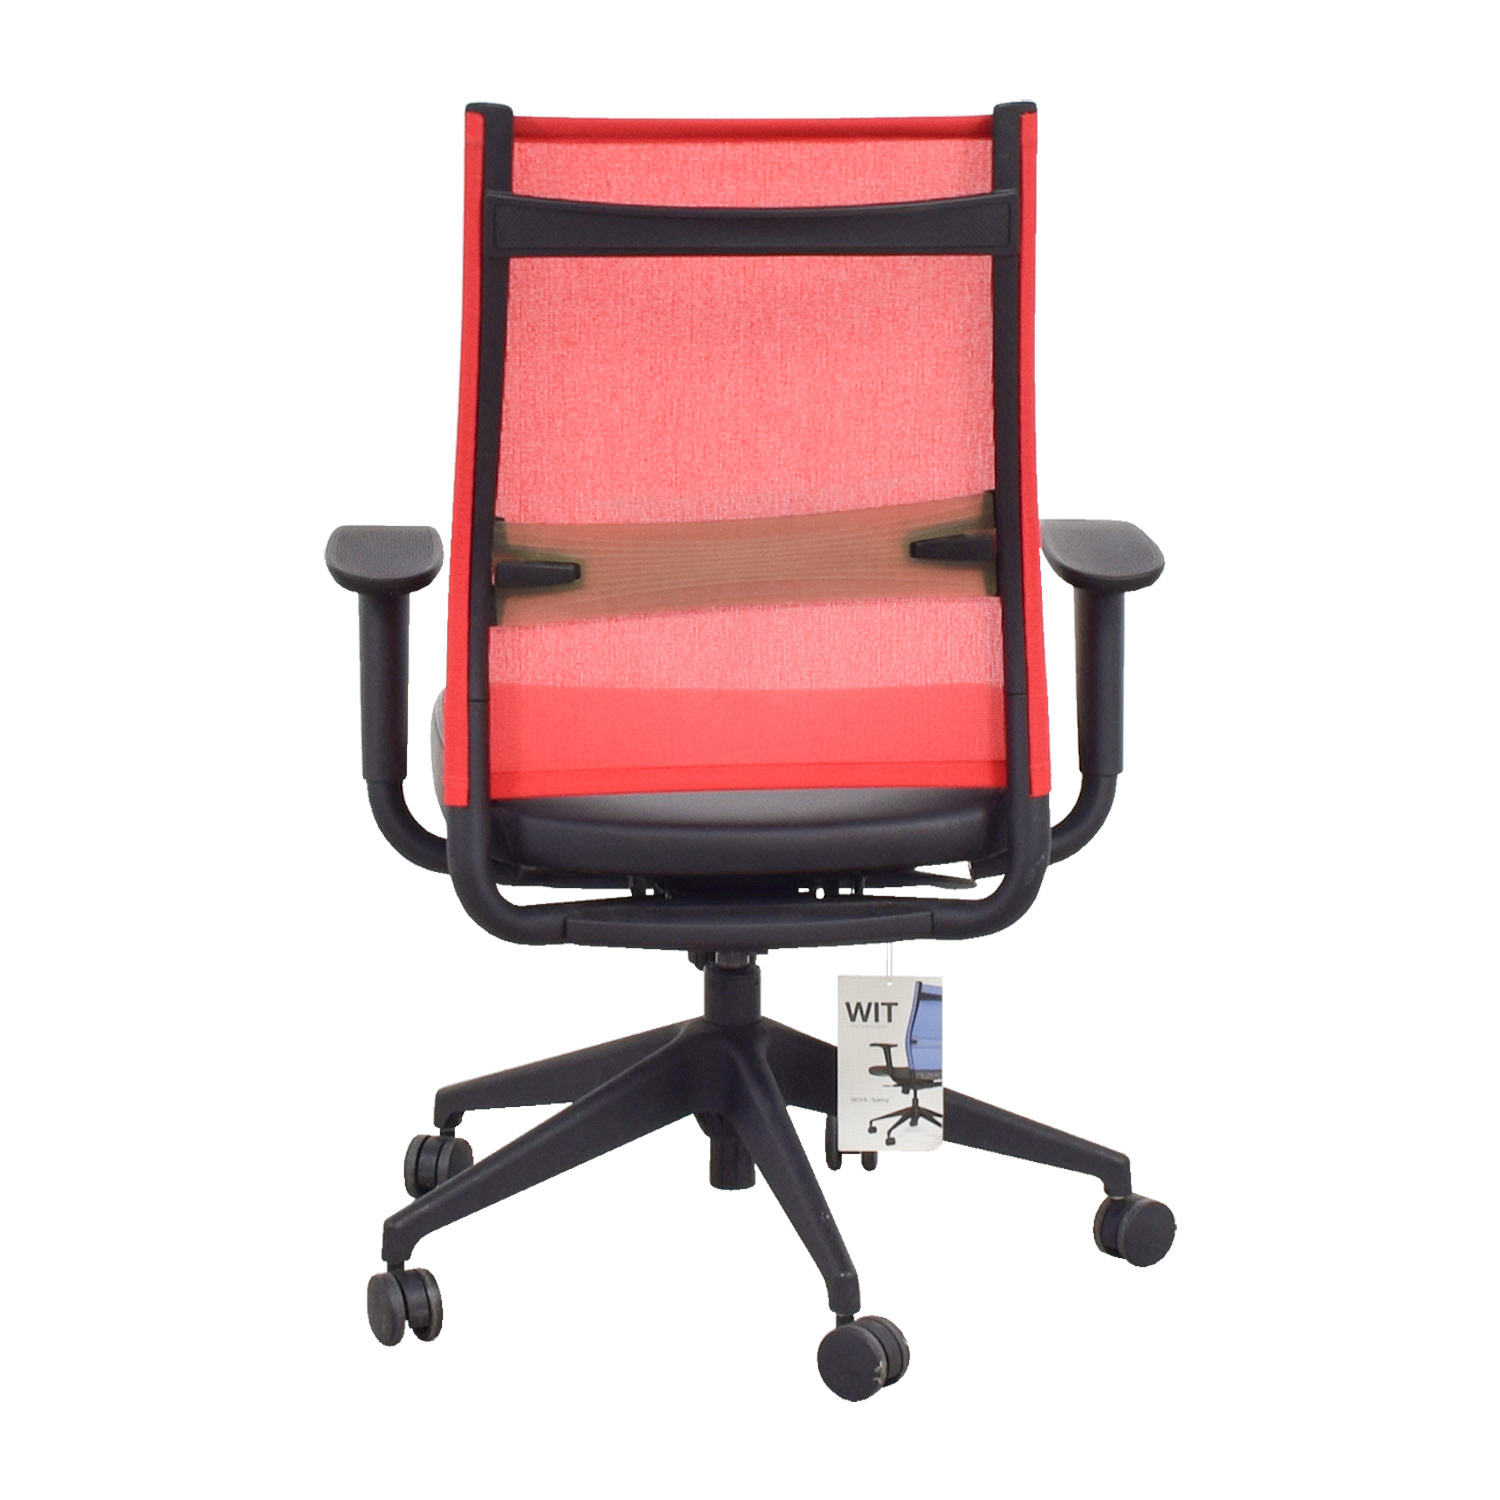 SitOnIt SitOnIt Red Office Chair second hand